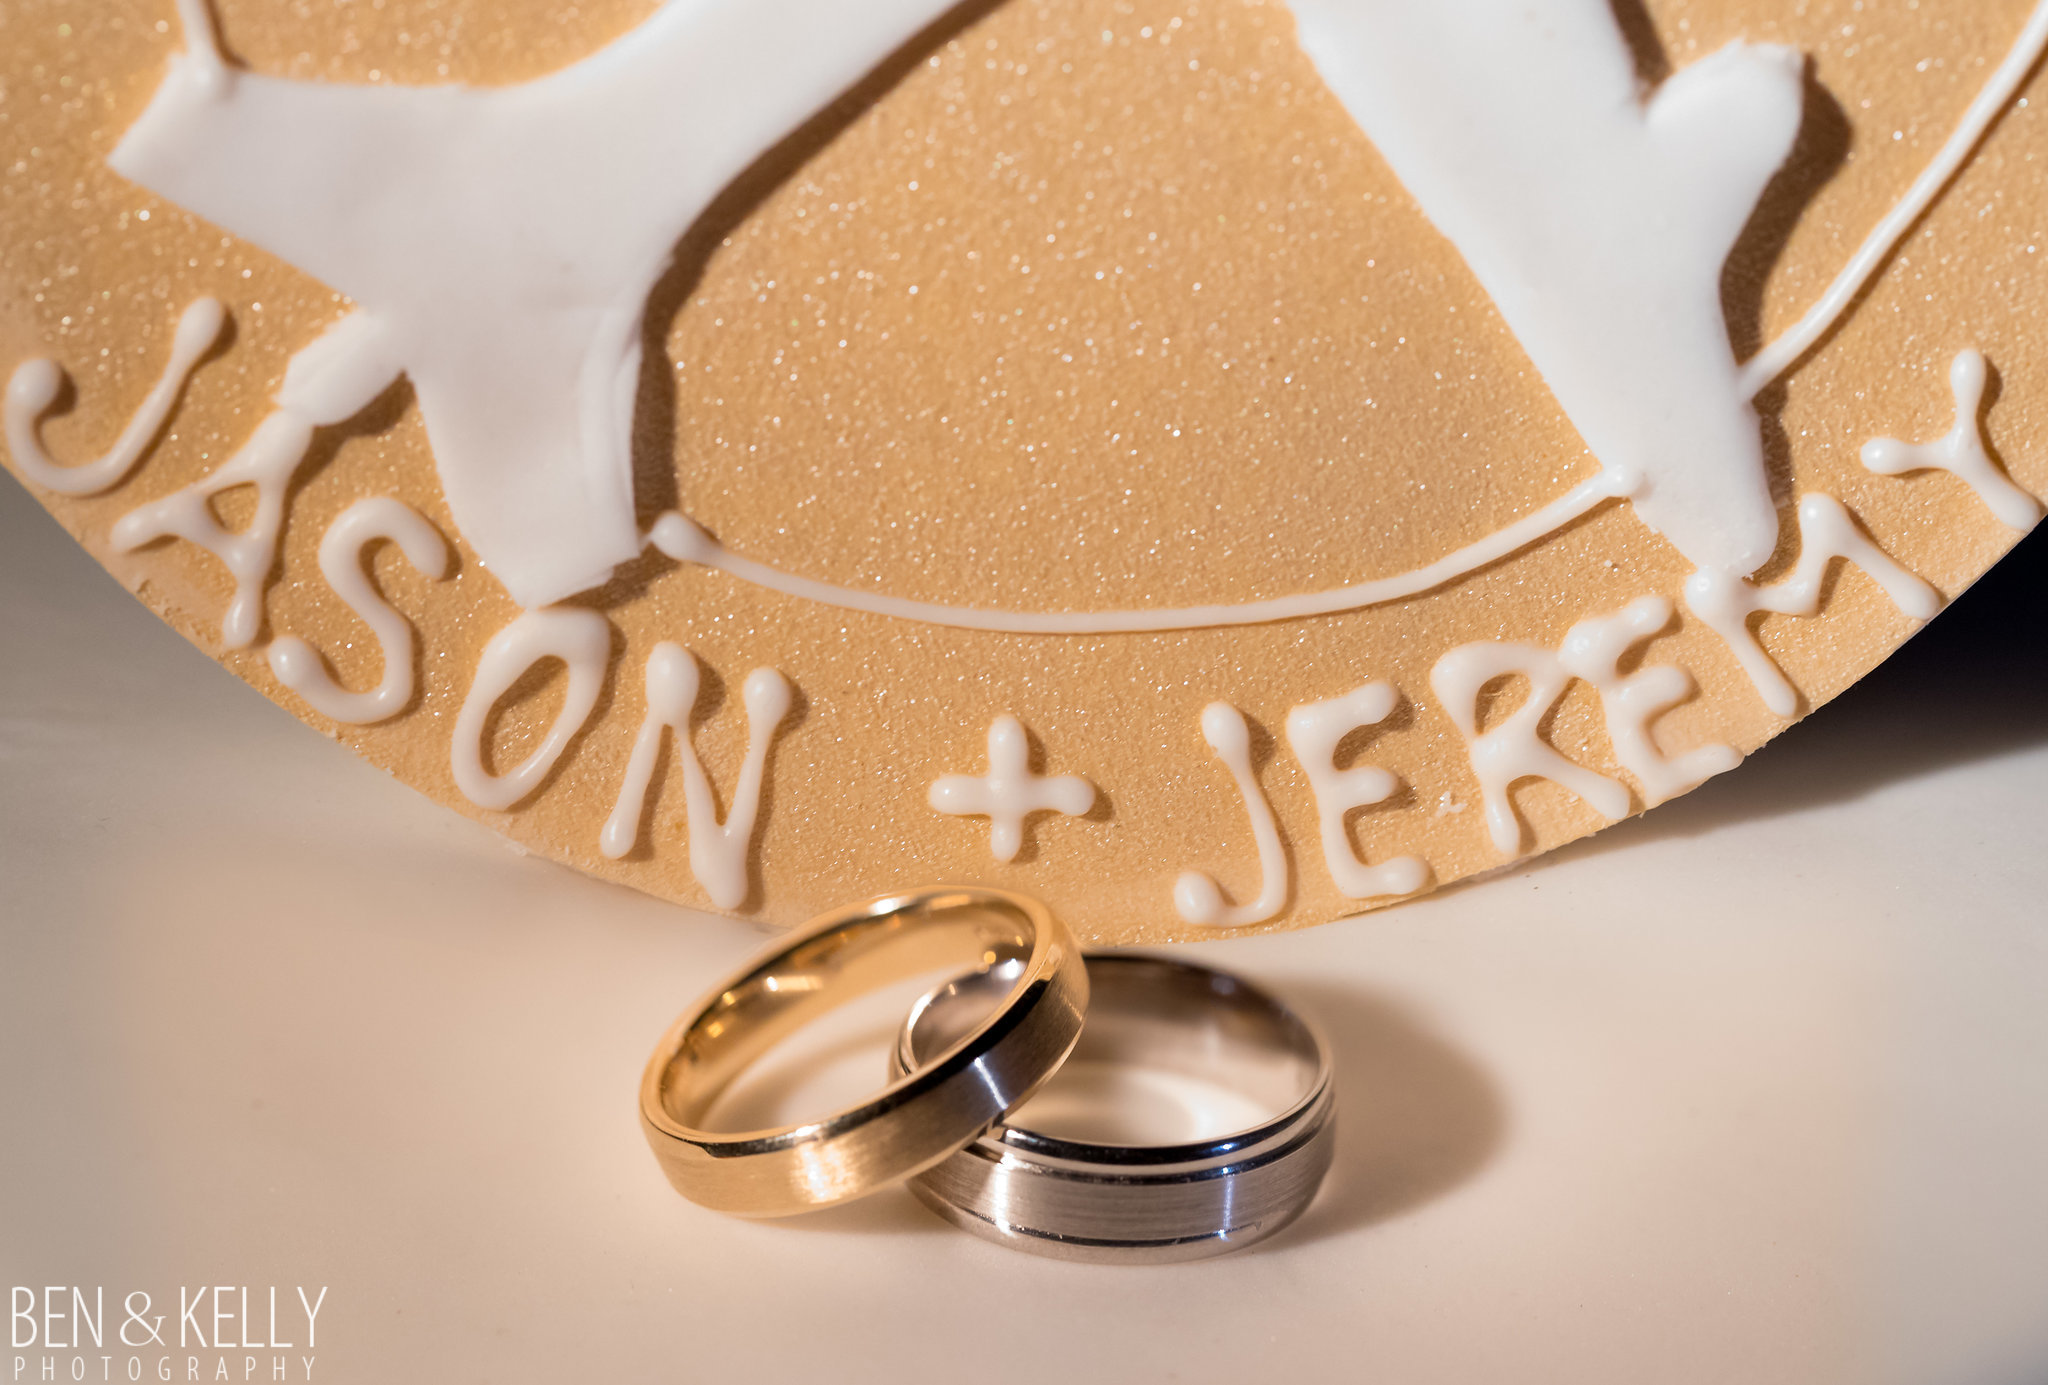 1a wedding rings groom rings wedding bands personalized wedding cake gold and silver wedding band Life Design Events photo by Ben and Kelly Photography.jpg